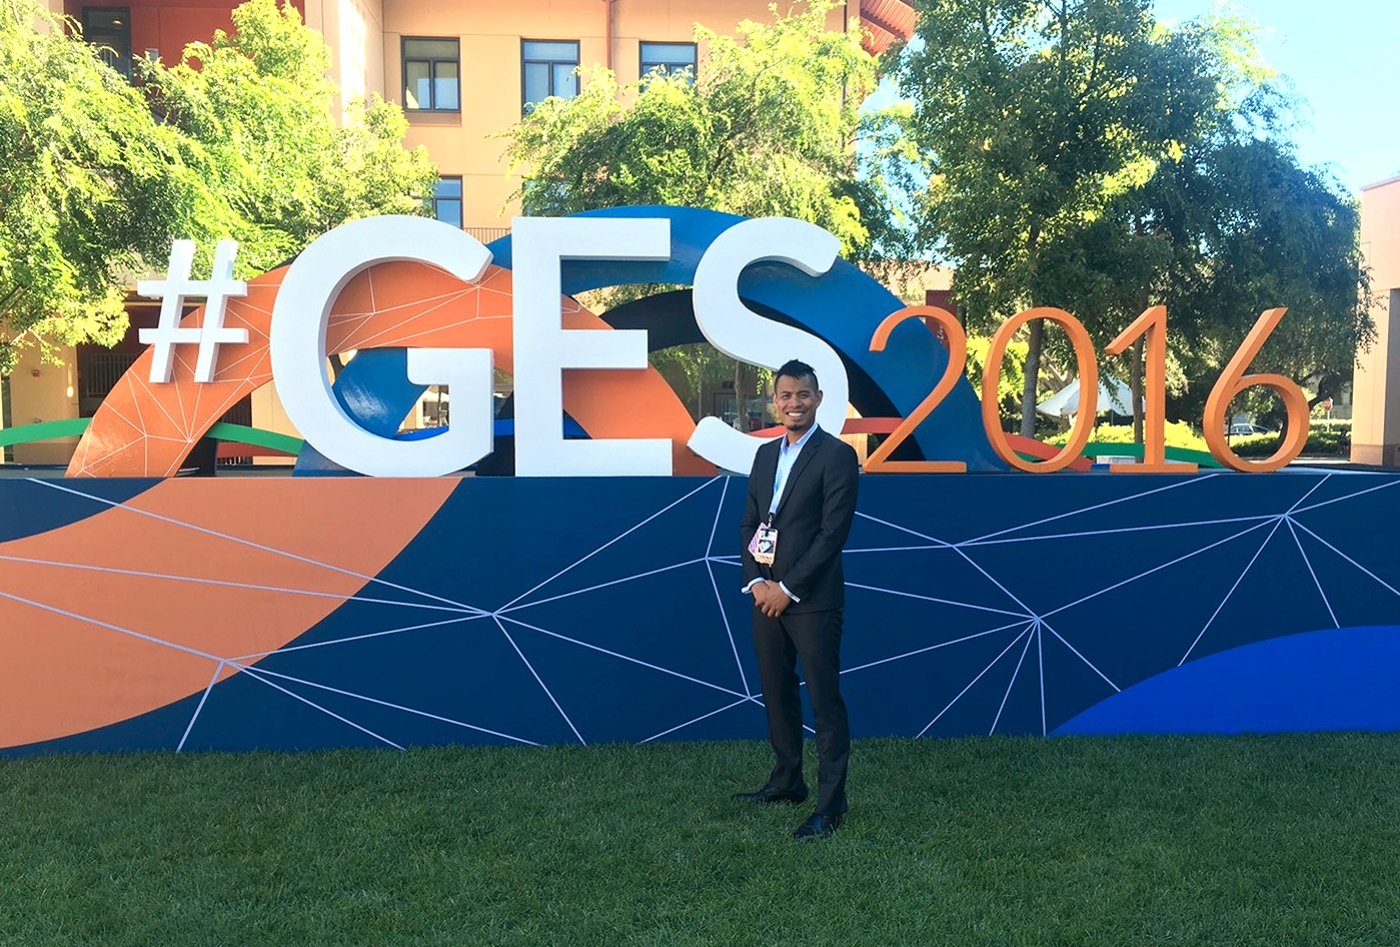 ges2016 paolo